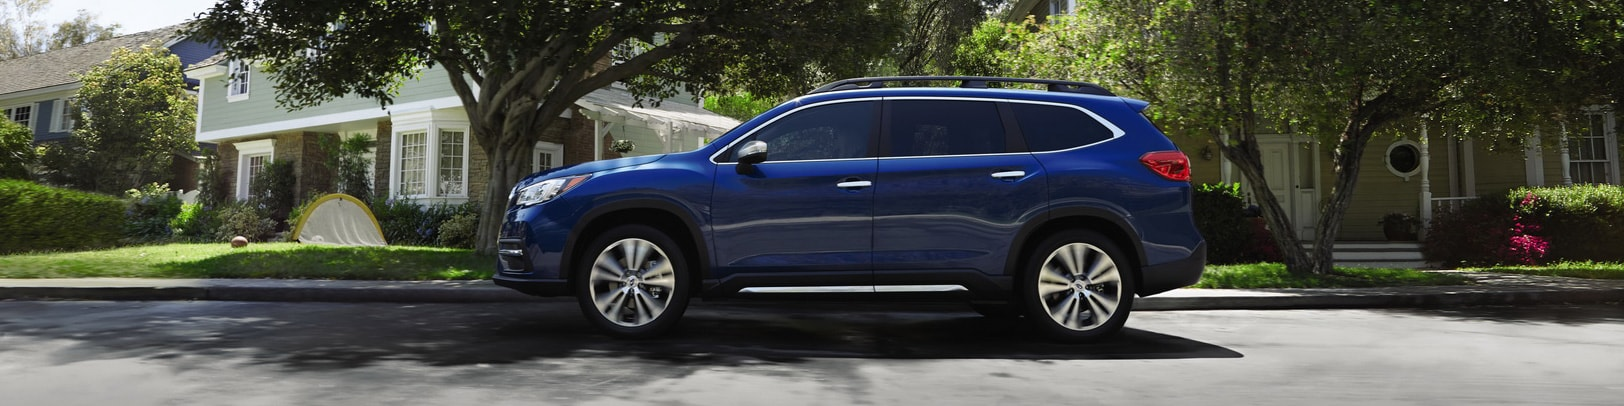 2021 Subaru Ascent for sale in Midland, TX